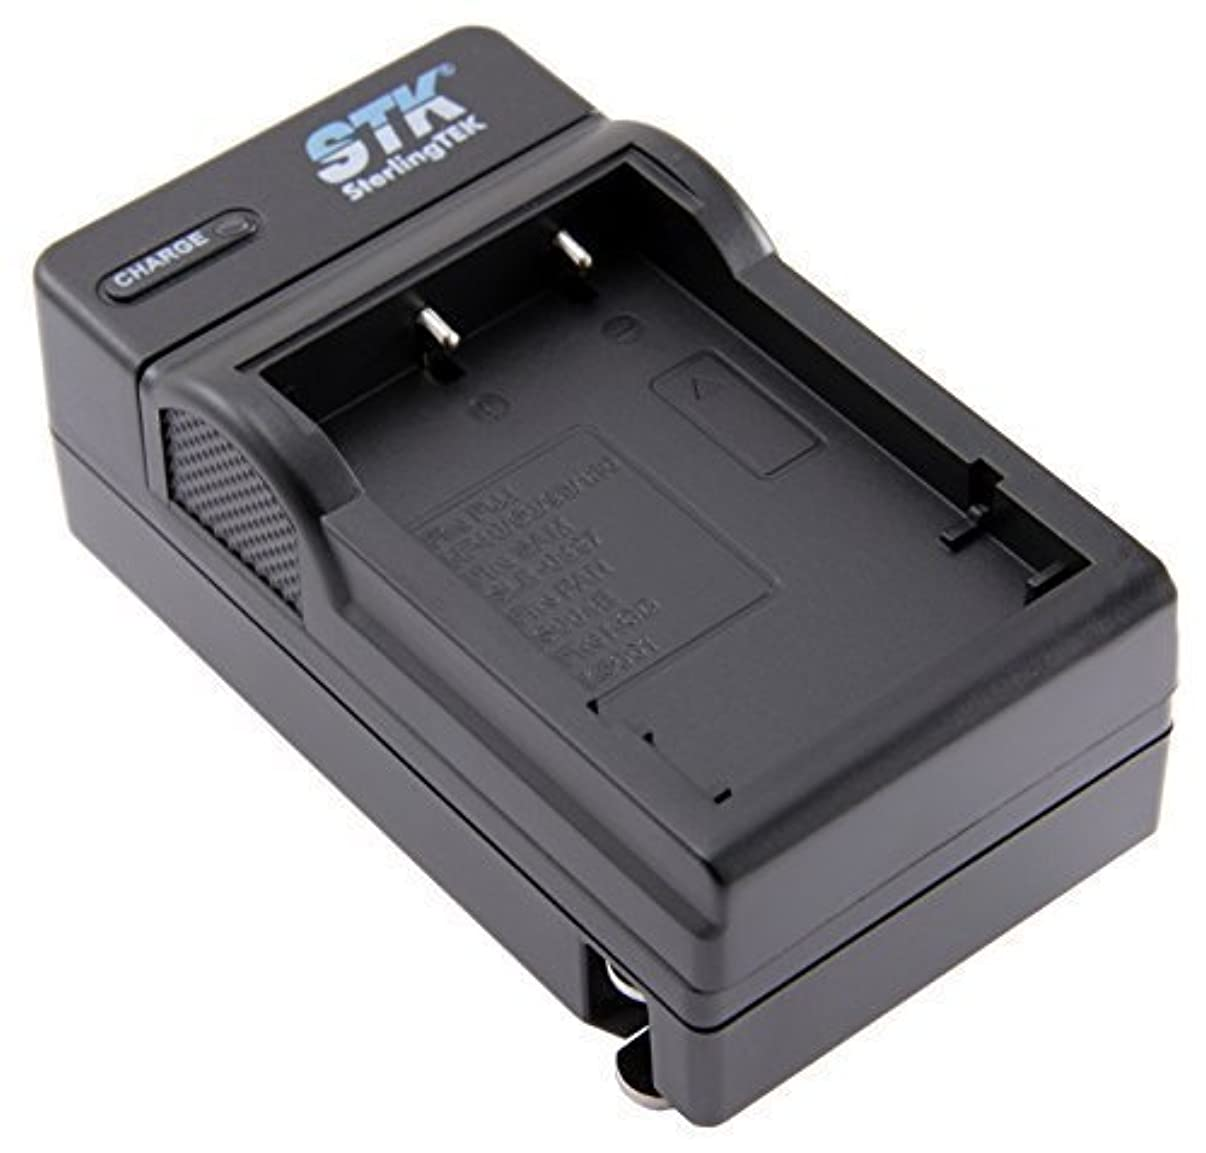 STK's Fuji NP-95 Battery Charger - for Fujifilm Finepix X100S, X100, F30, X-S1, F31fd, Real 3D W1, NP-95, BC-65